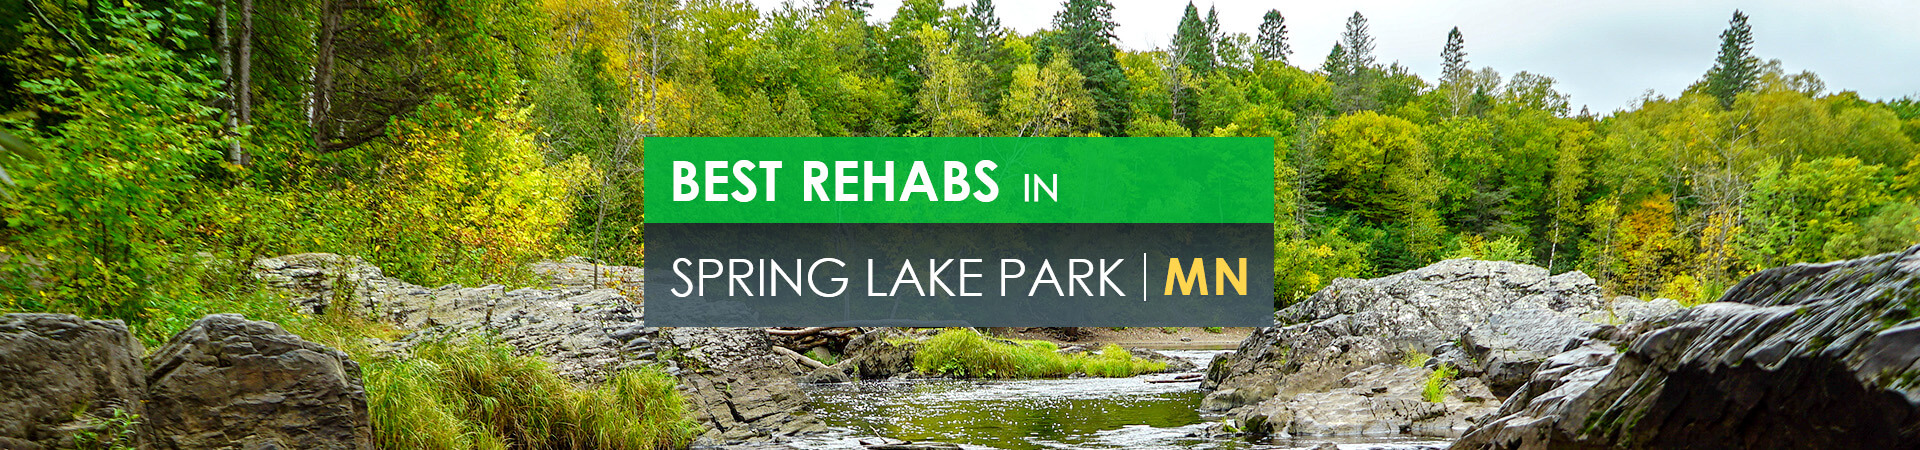 Best rehabs in Spring Lake Park, MN